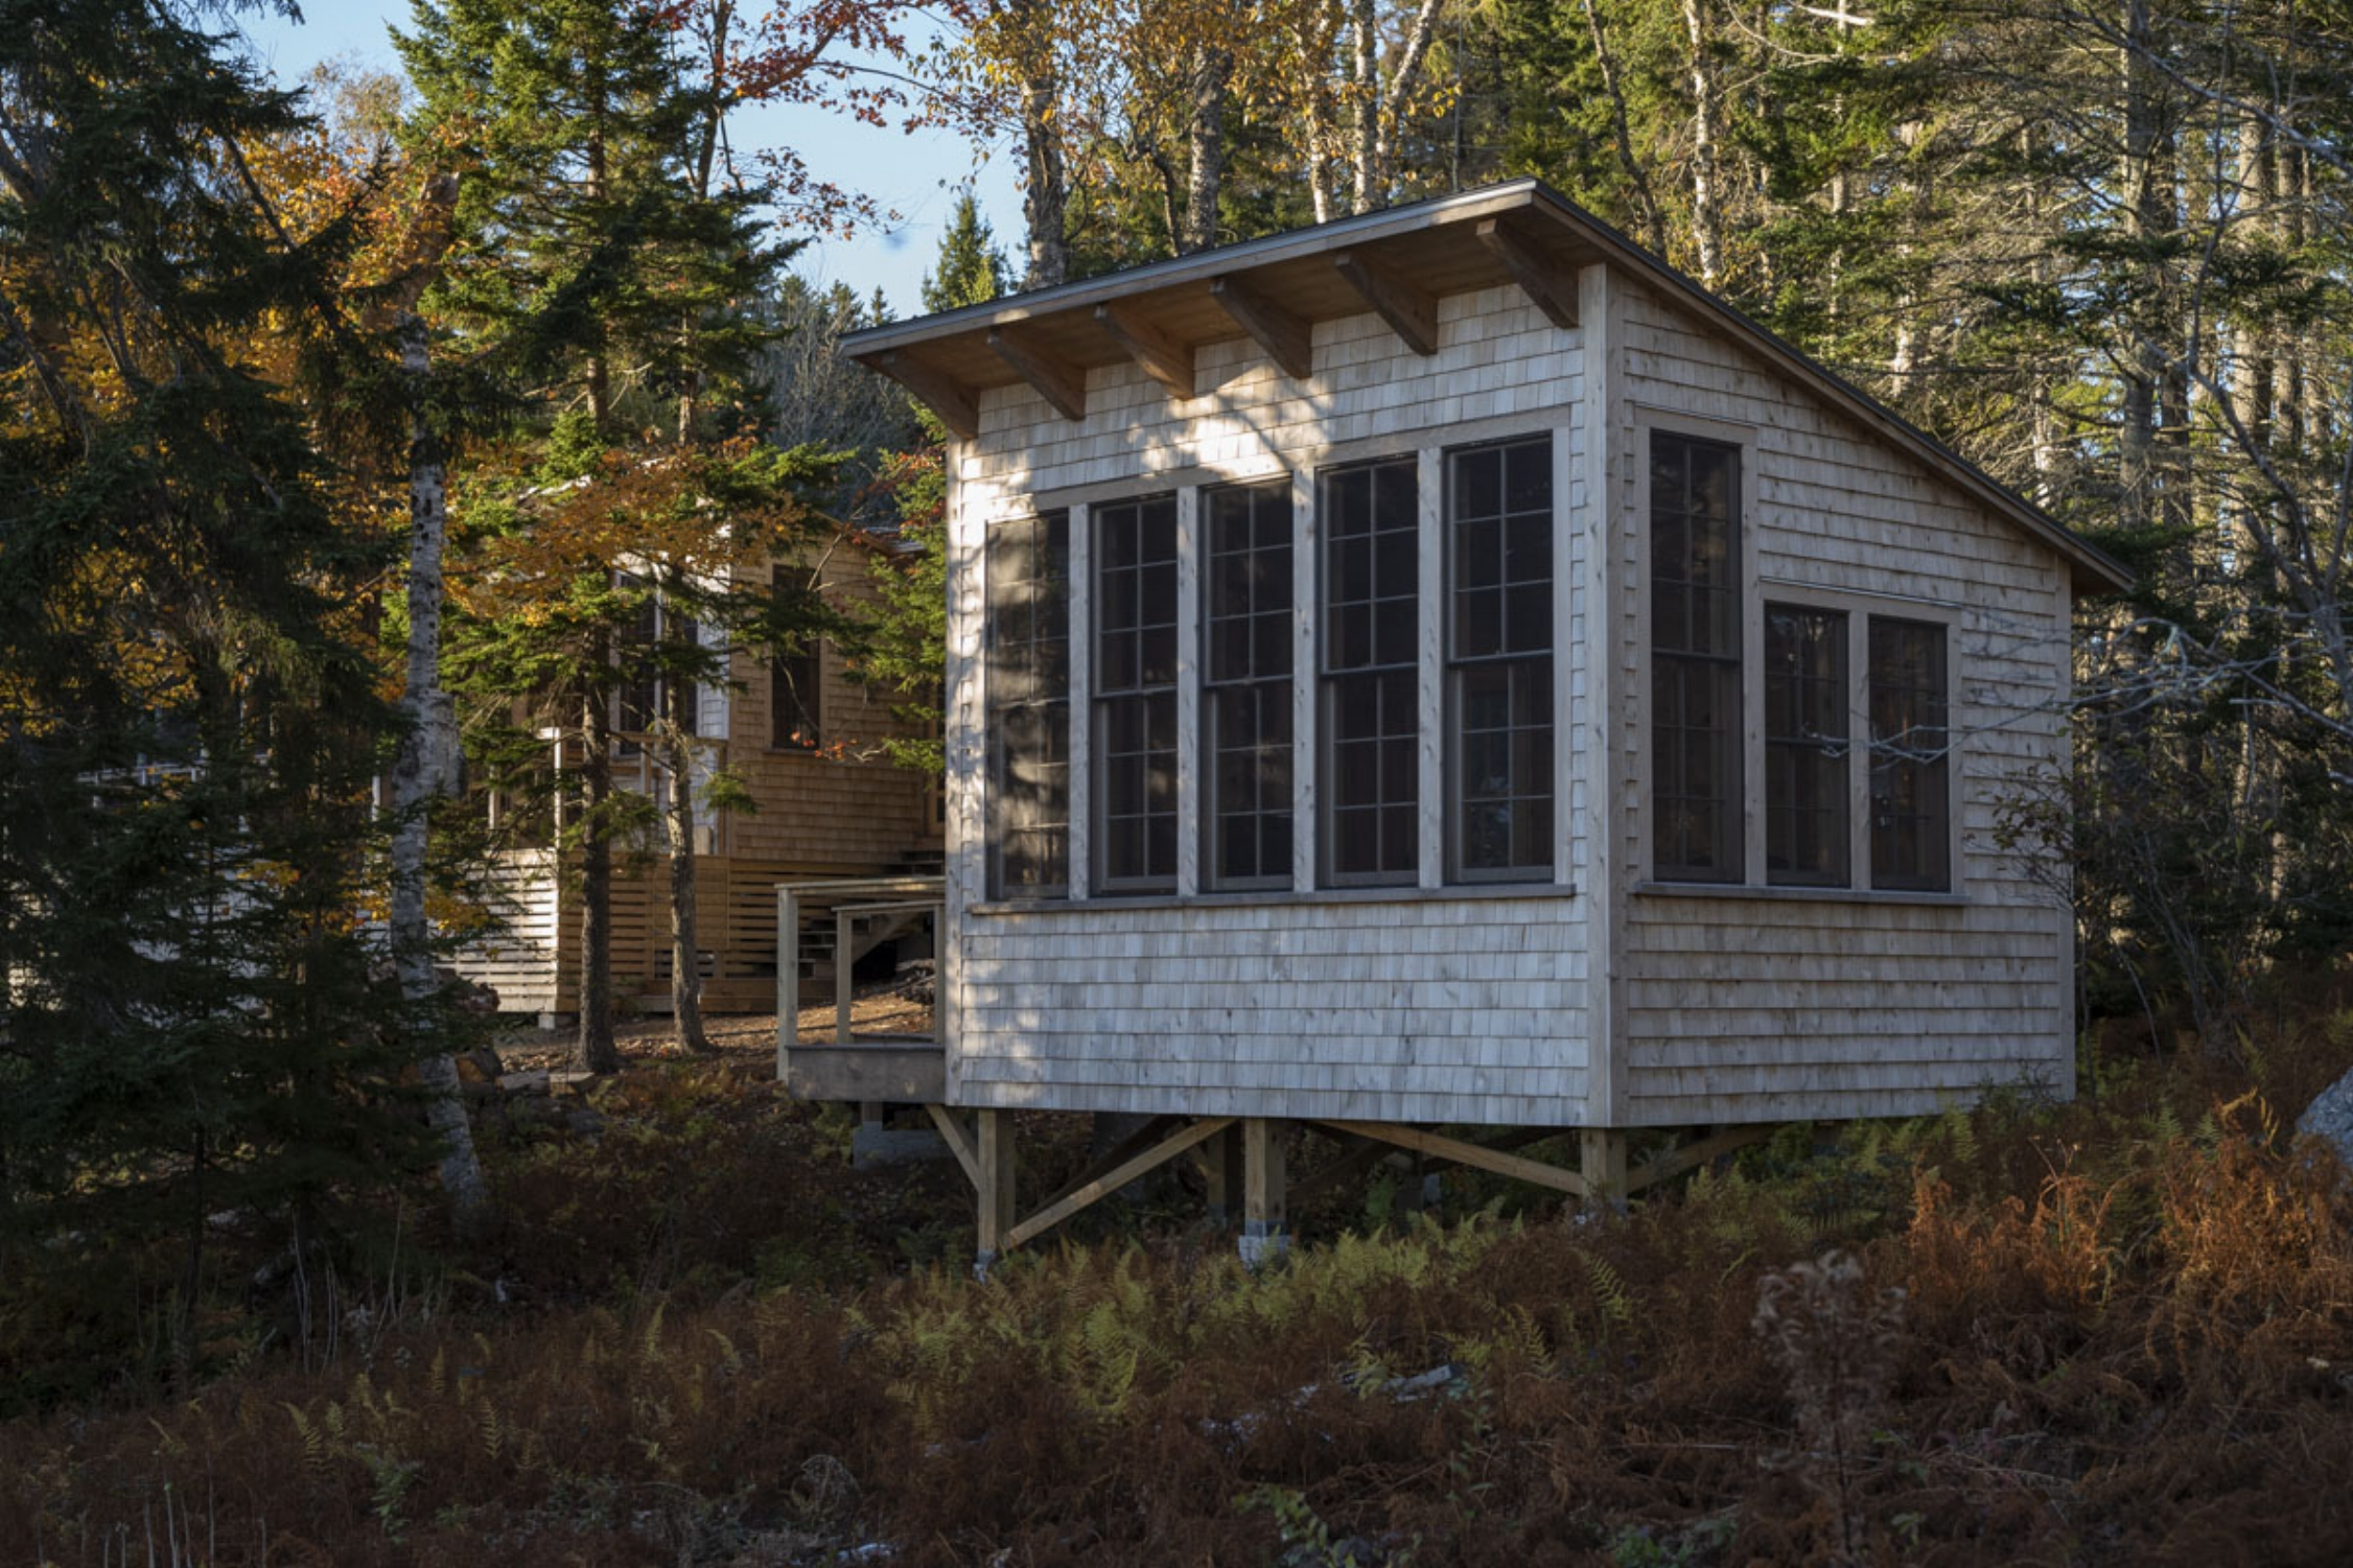 phopro-ext-cove_cabin_s_facade-150ppi8x5.jpg